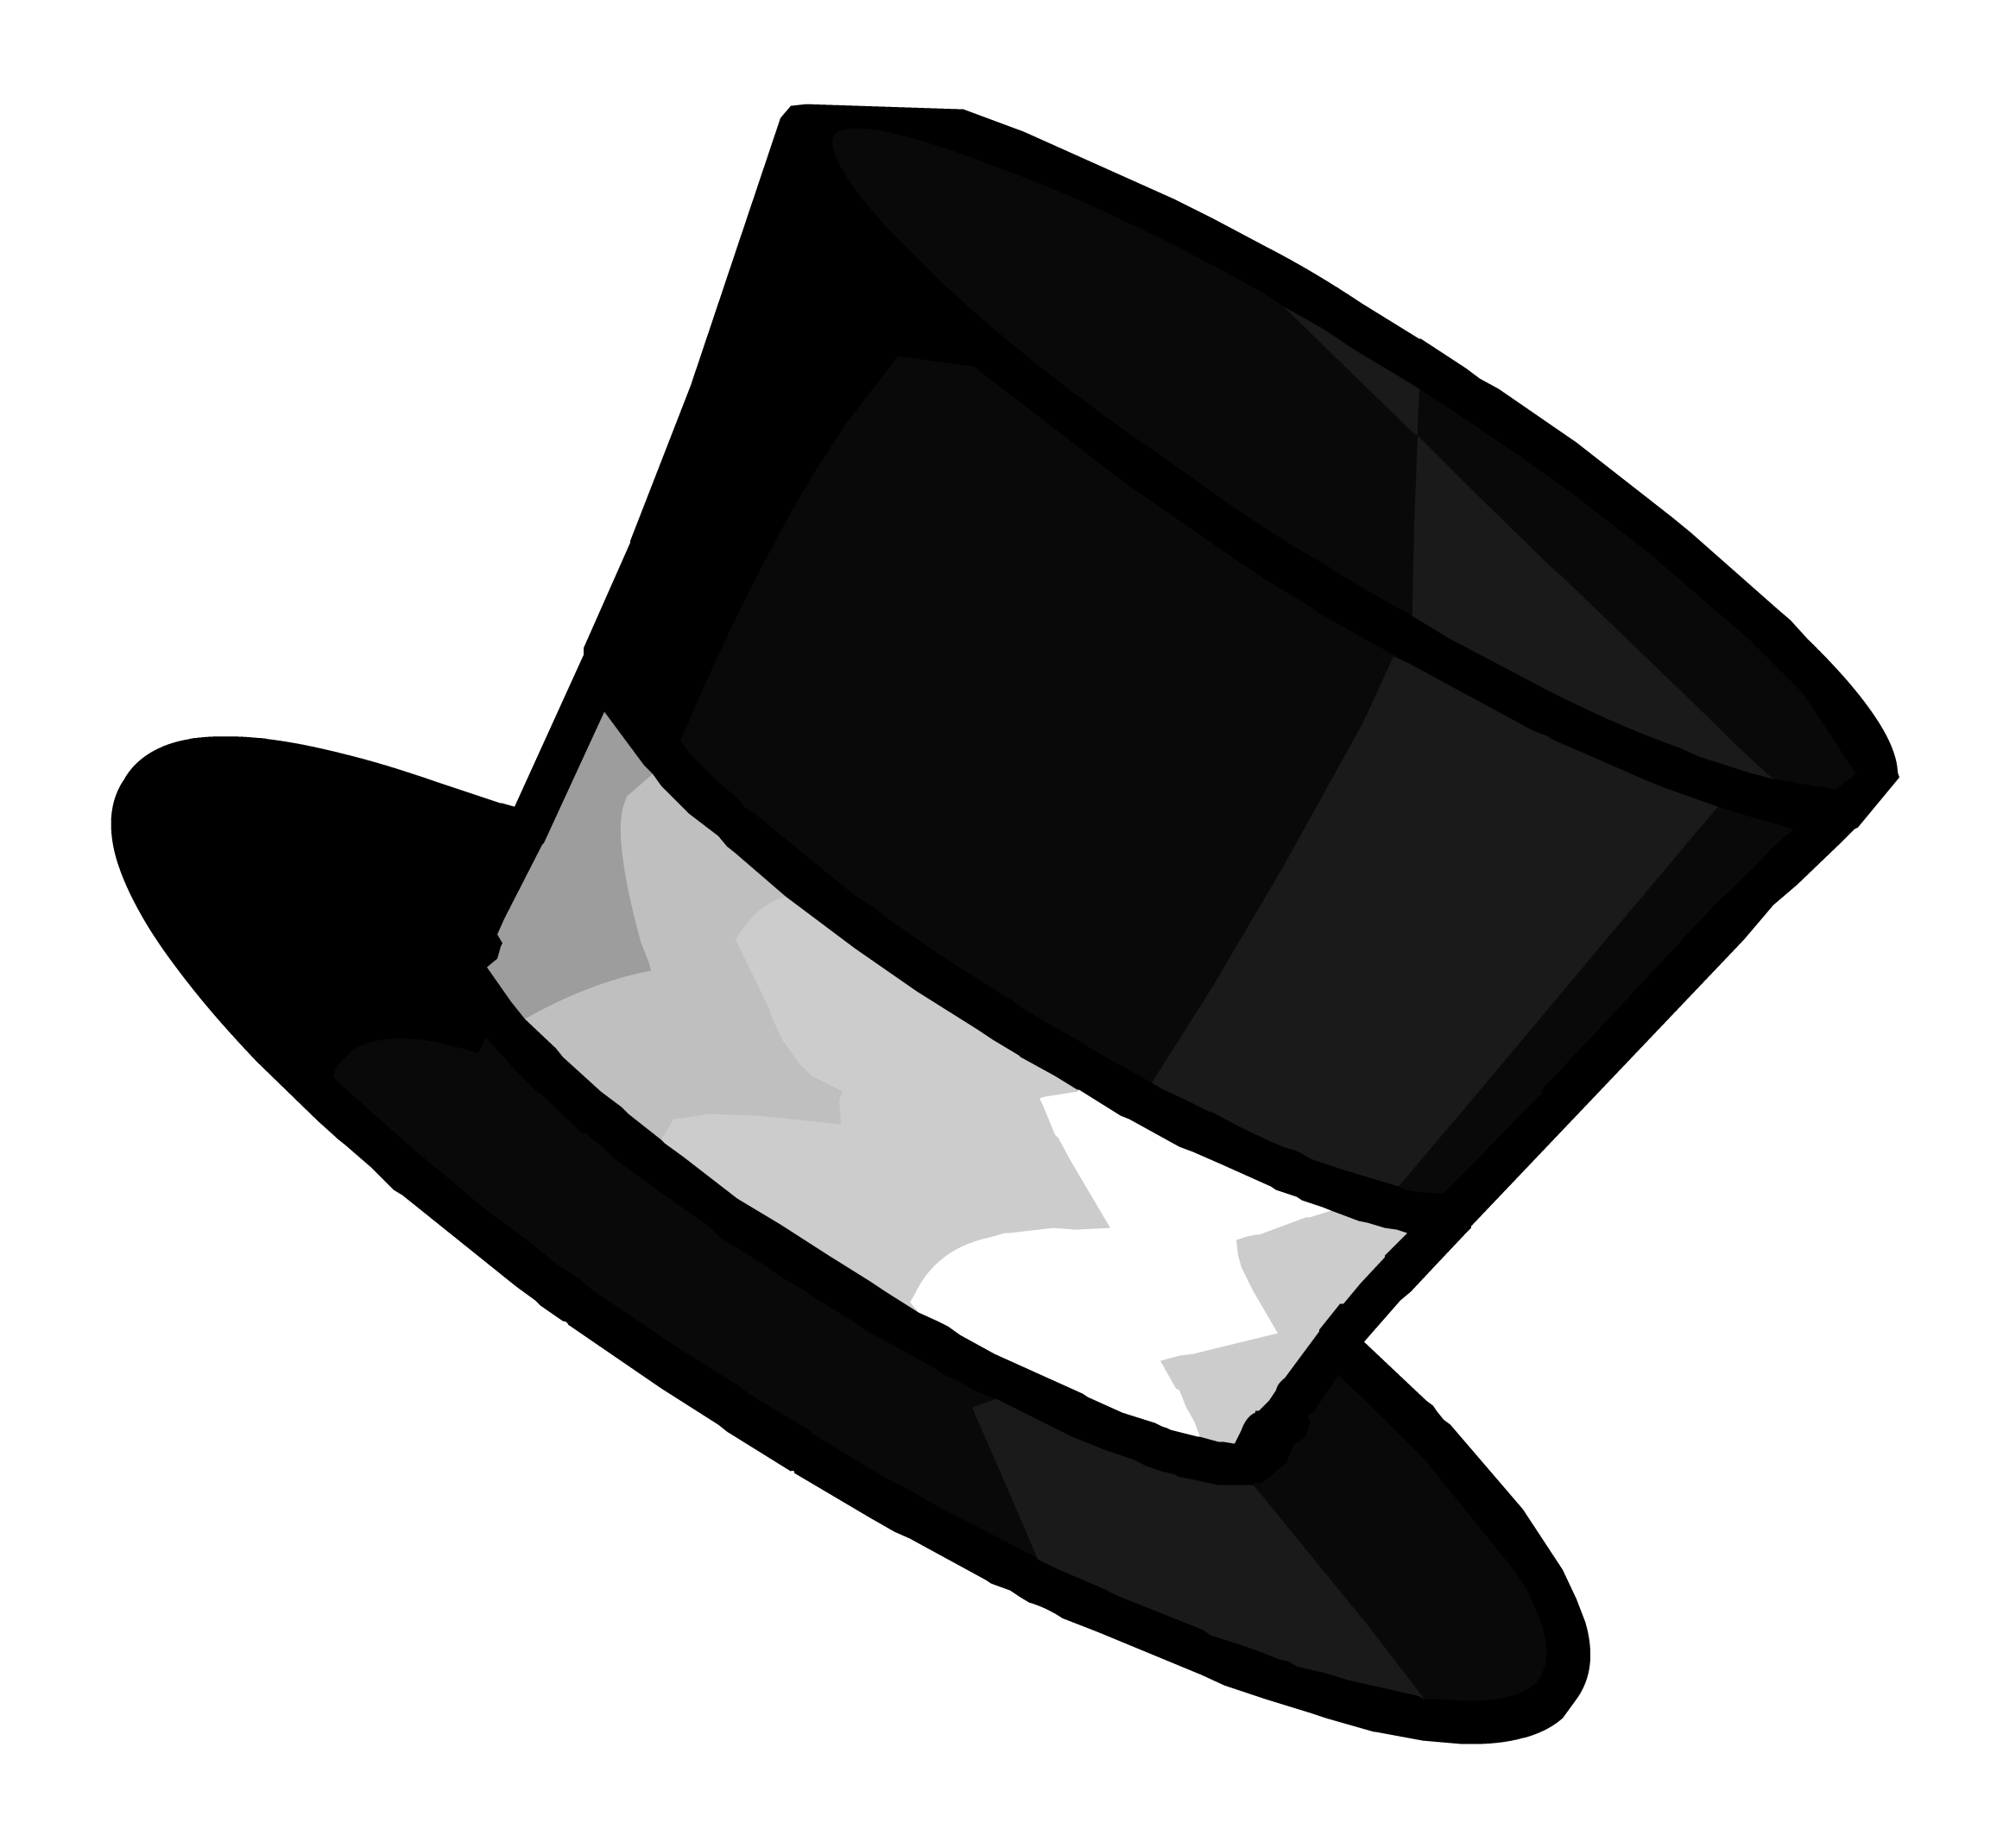 Top Hat Template Top hat pin